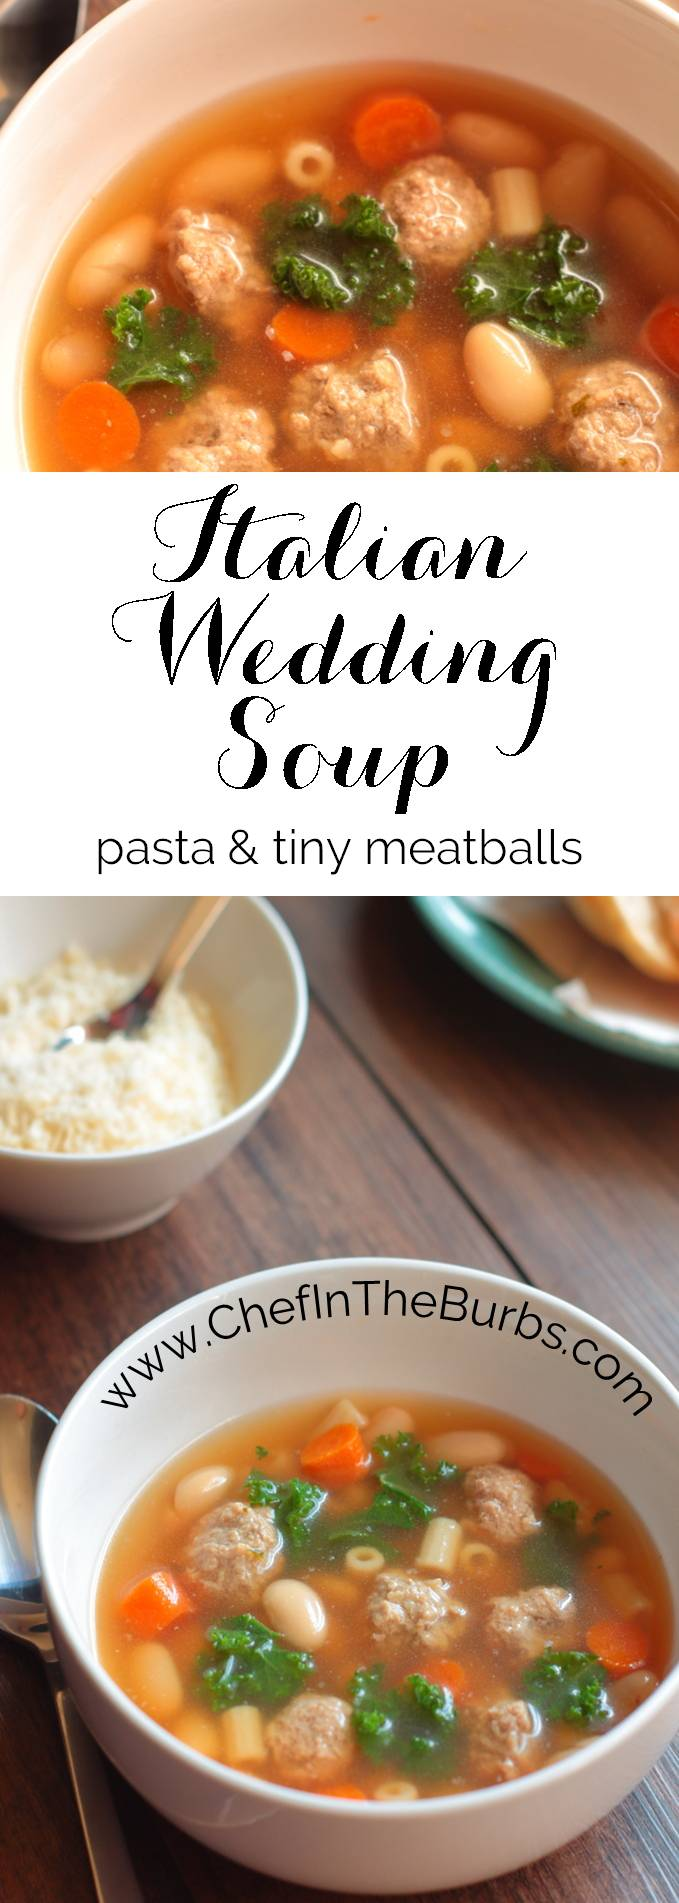 Italian Wedding Soup is a classic soup featuring pasta, fresh greens and tiny meatballs. It's perfect for a chilly fall evening.